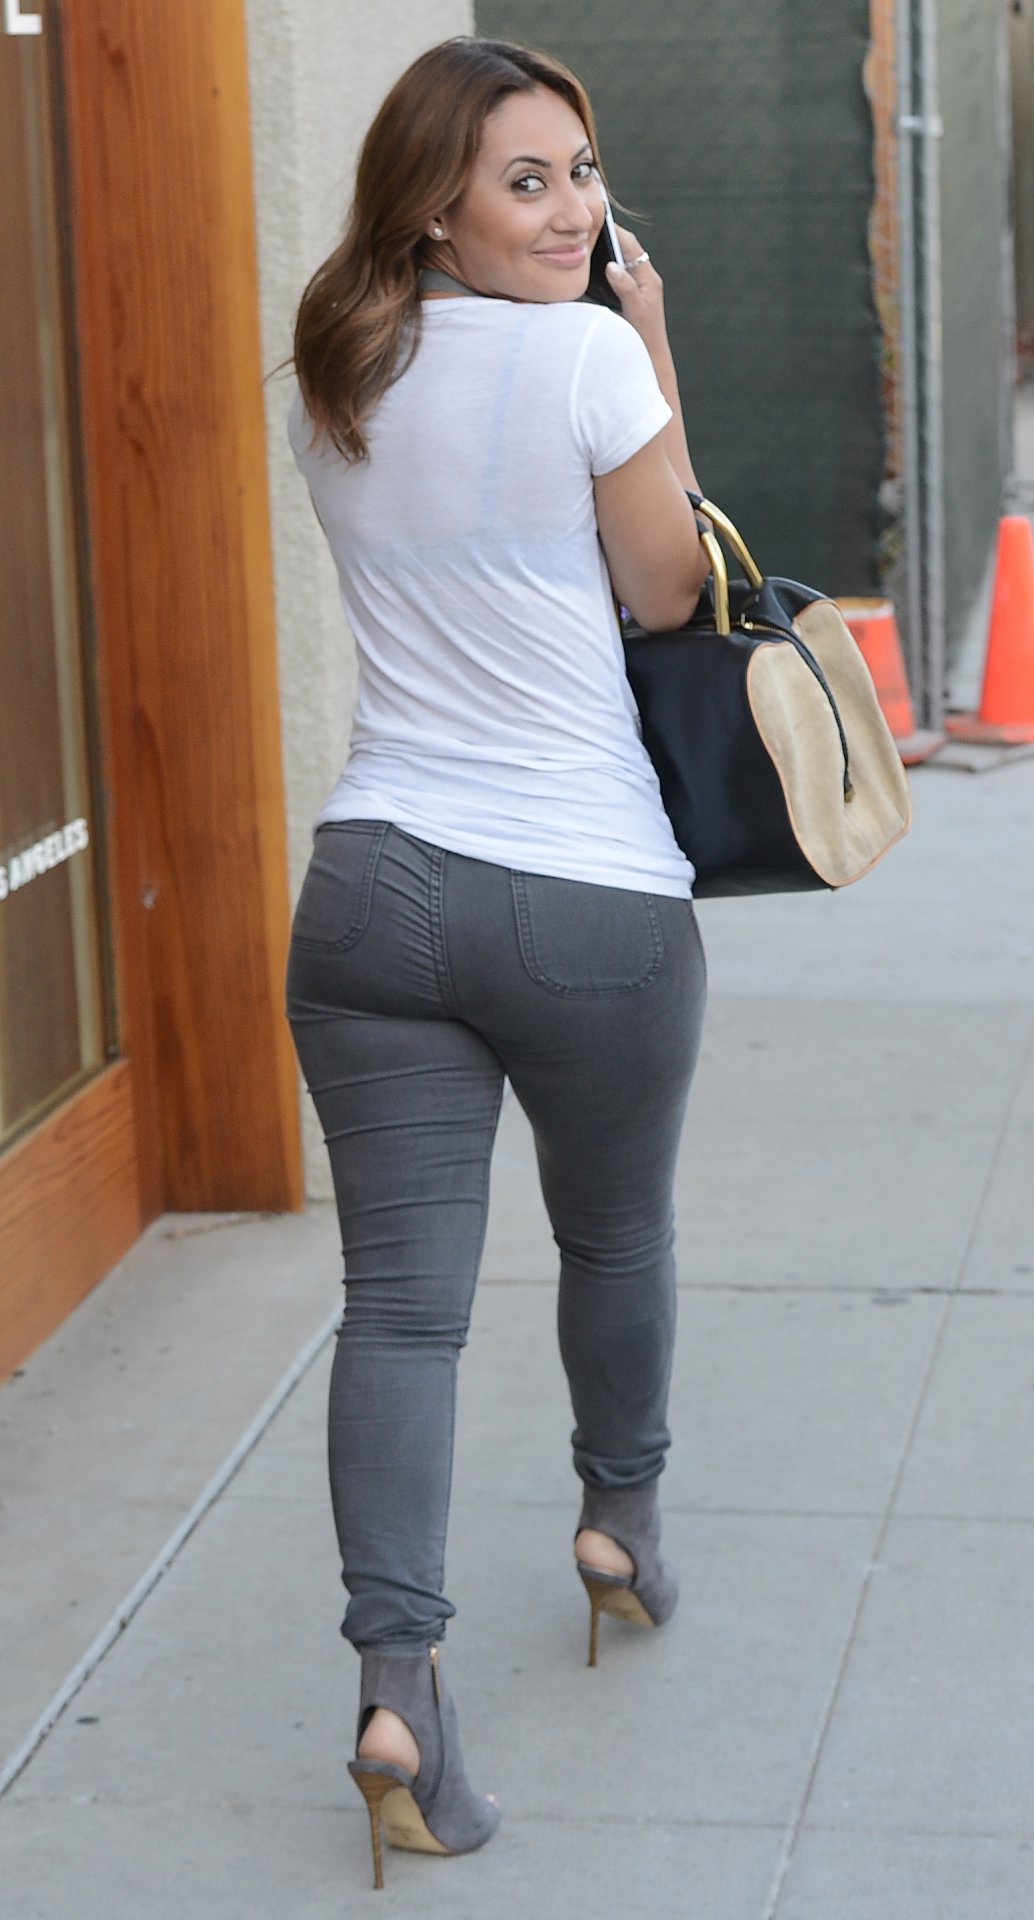 What necessary Francia raisa ass